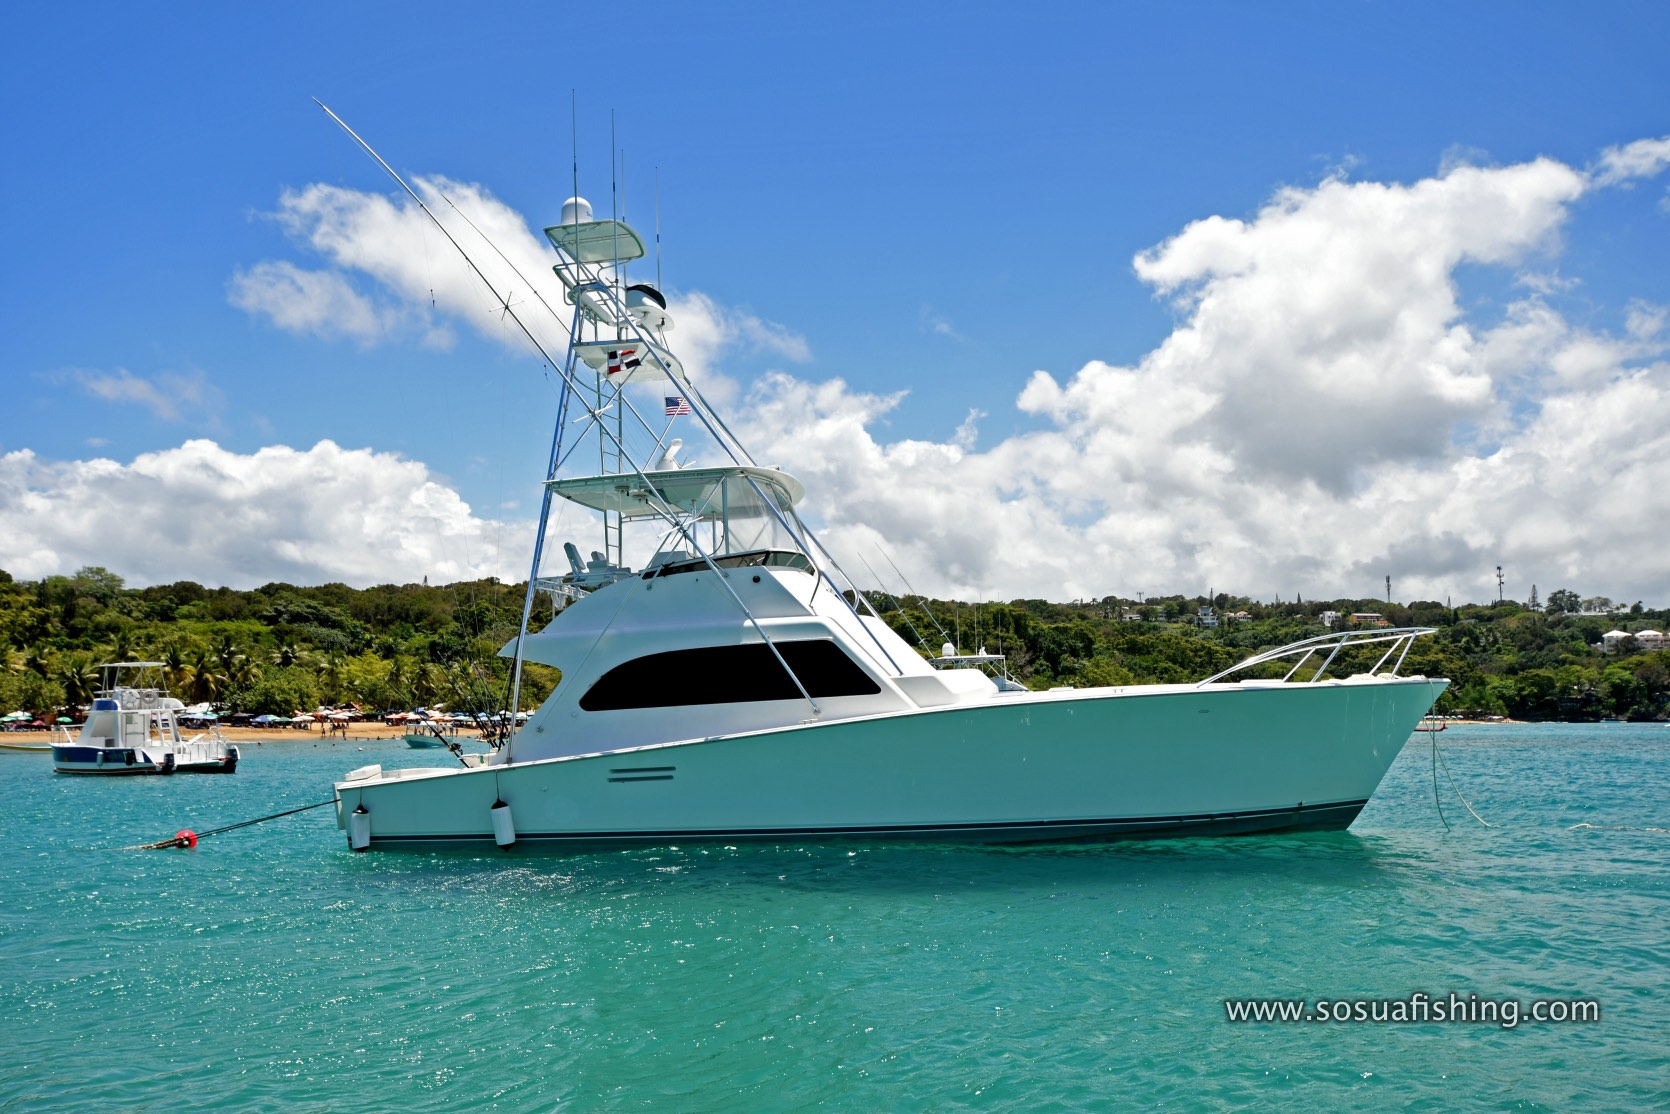 Luxury Yacht Rental in Sosua Puerto Plata